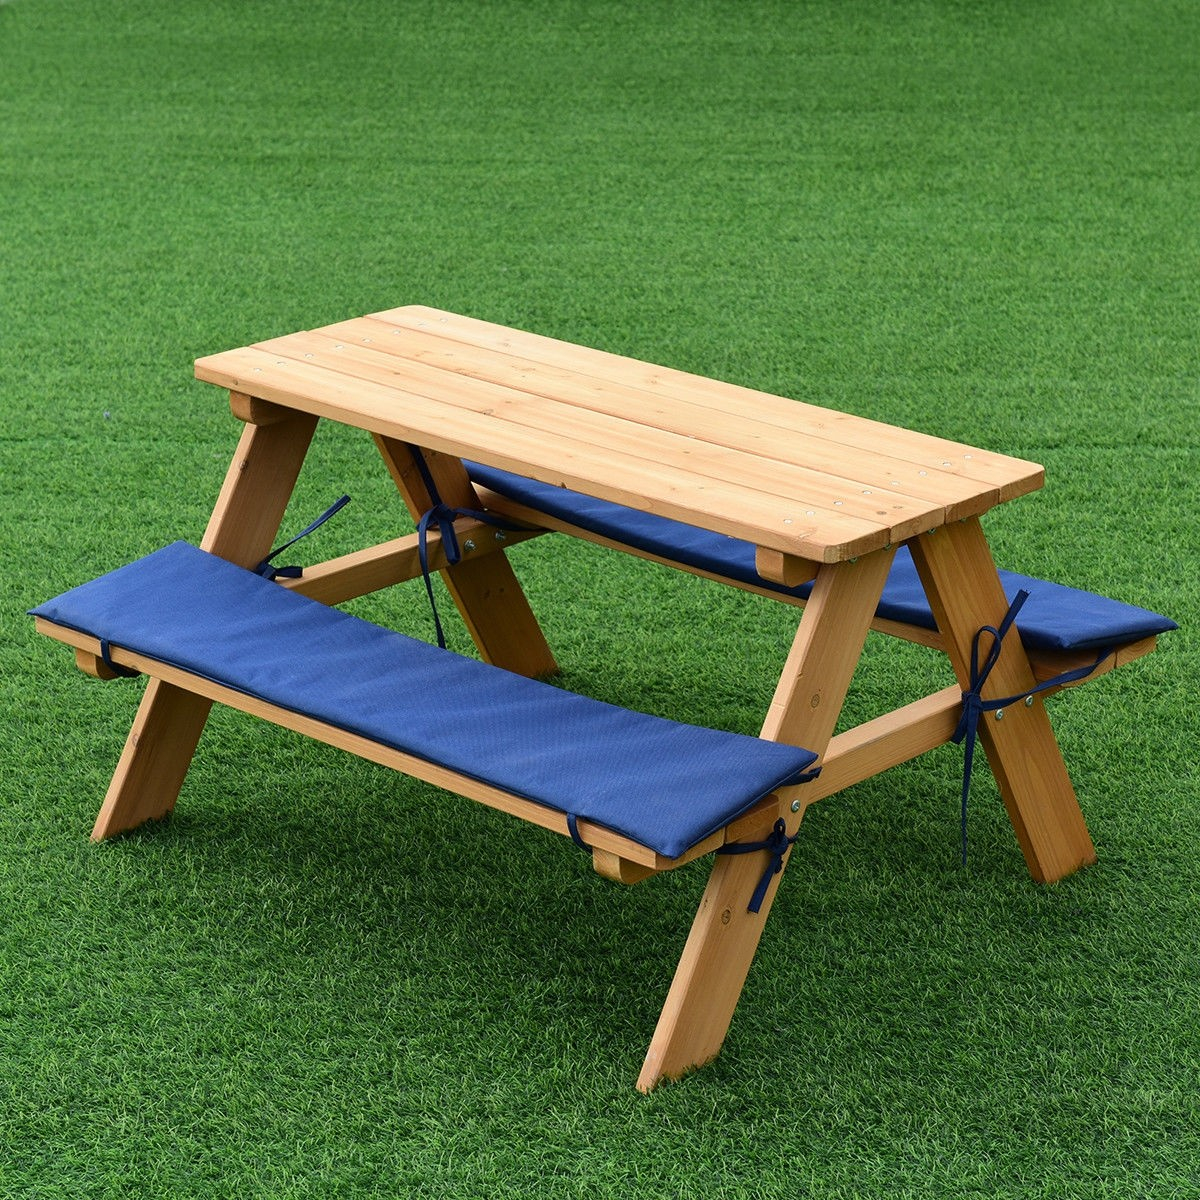 Details About Kids Wooden Picnic Beach Table Bench Set Cushion Indoor Or Outdoor Use New